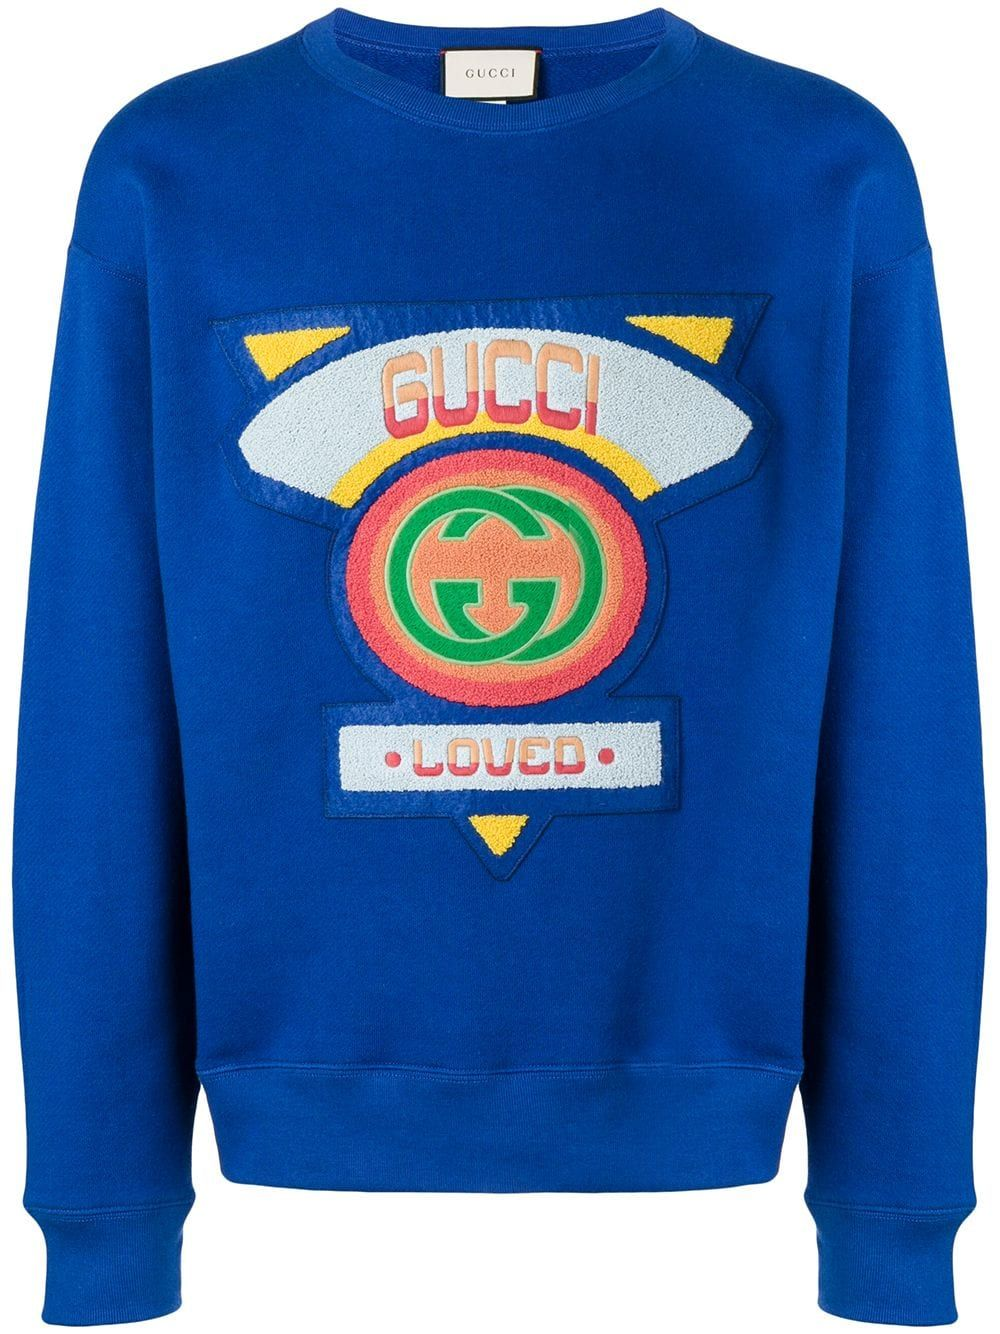 e1a2691ee05 GUCCI GUCCI FLOCKED SWEATSHIRT - BLUE.  gucci  cloth